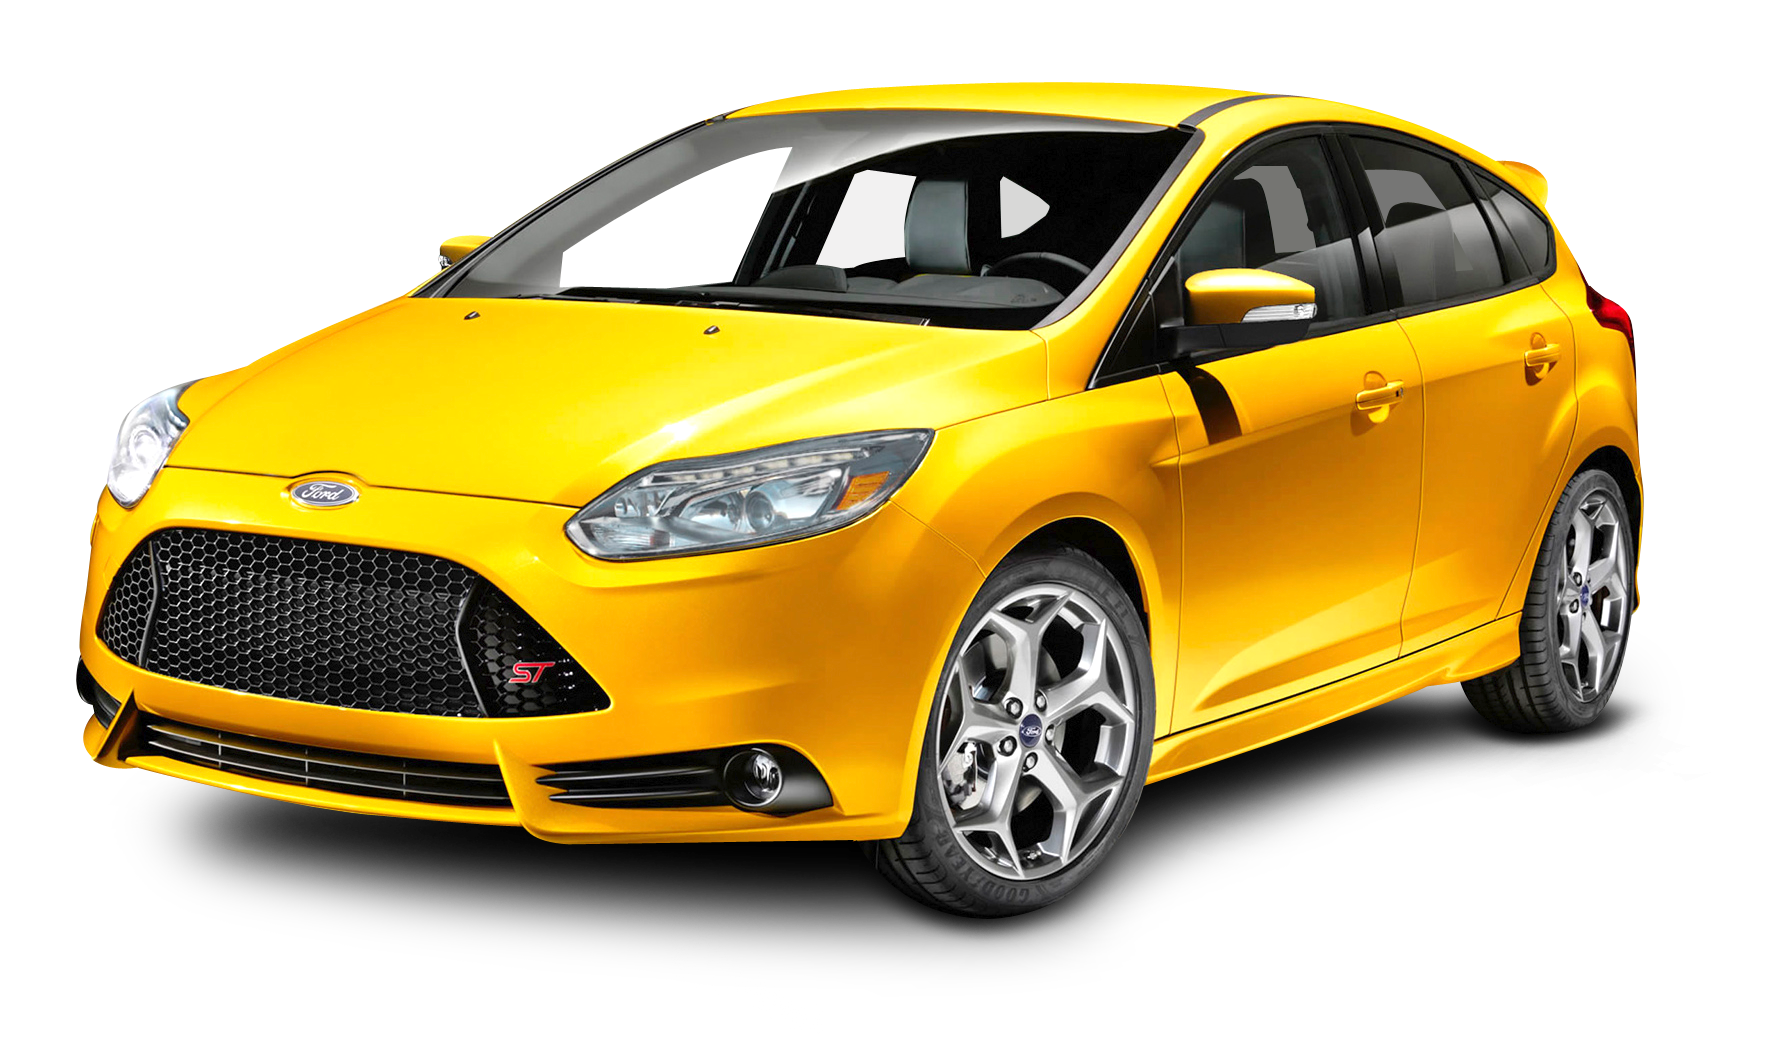 Ford Focus Yellow Car PNG Image.